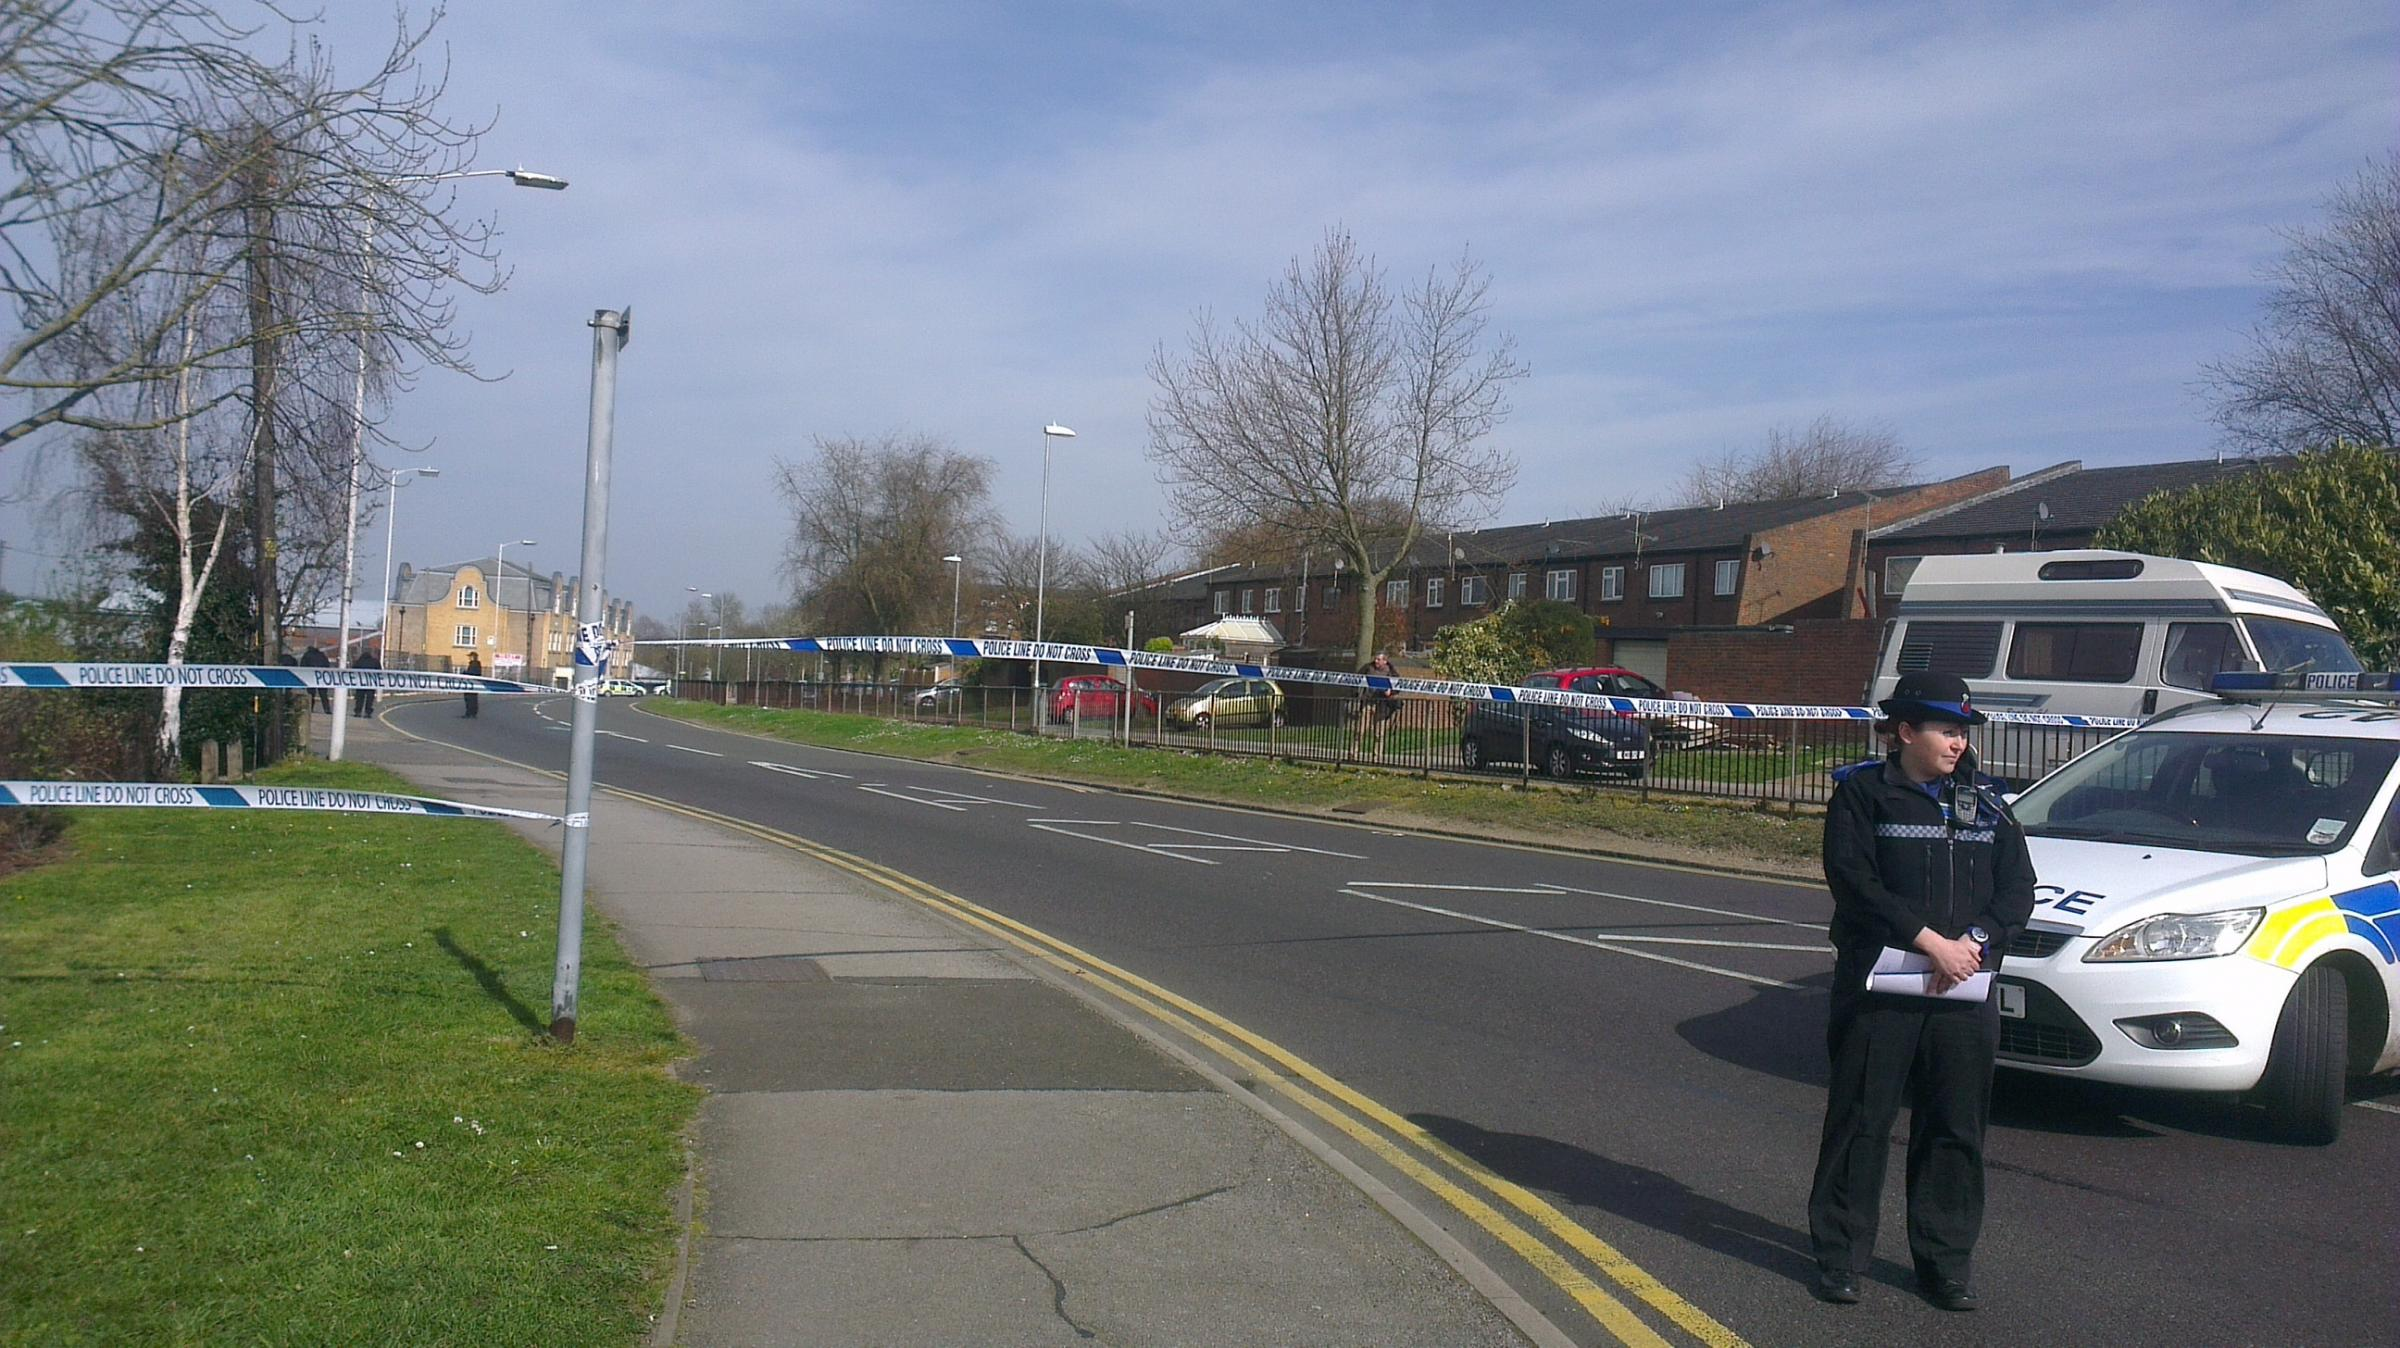 UPDATED: Police confirm reports of shooting in Laindon as High Road is closed off